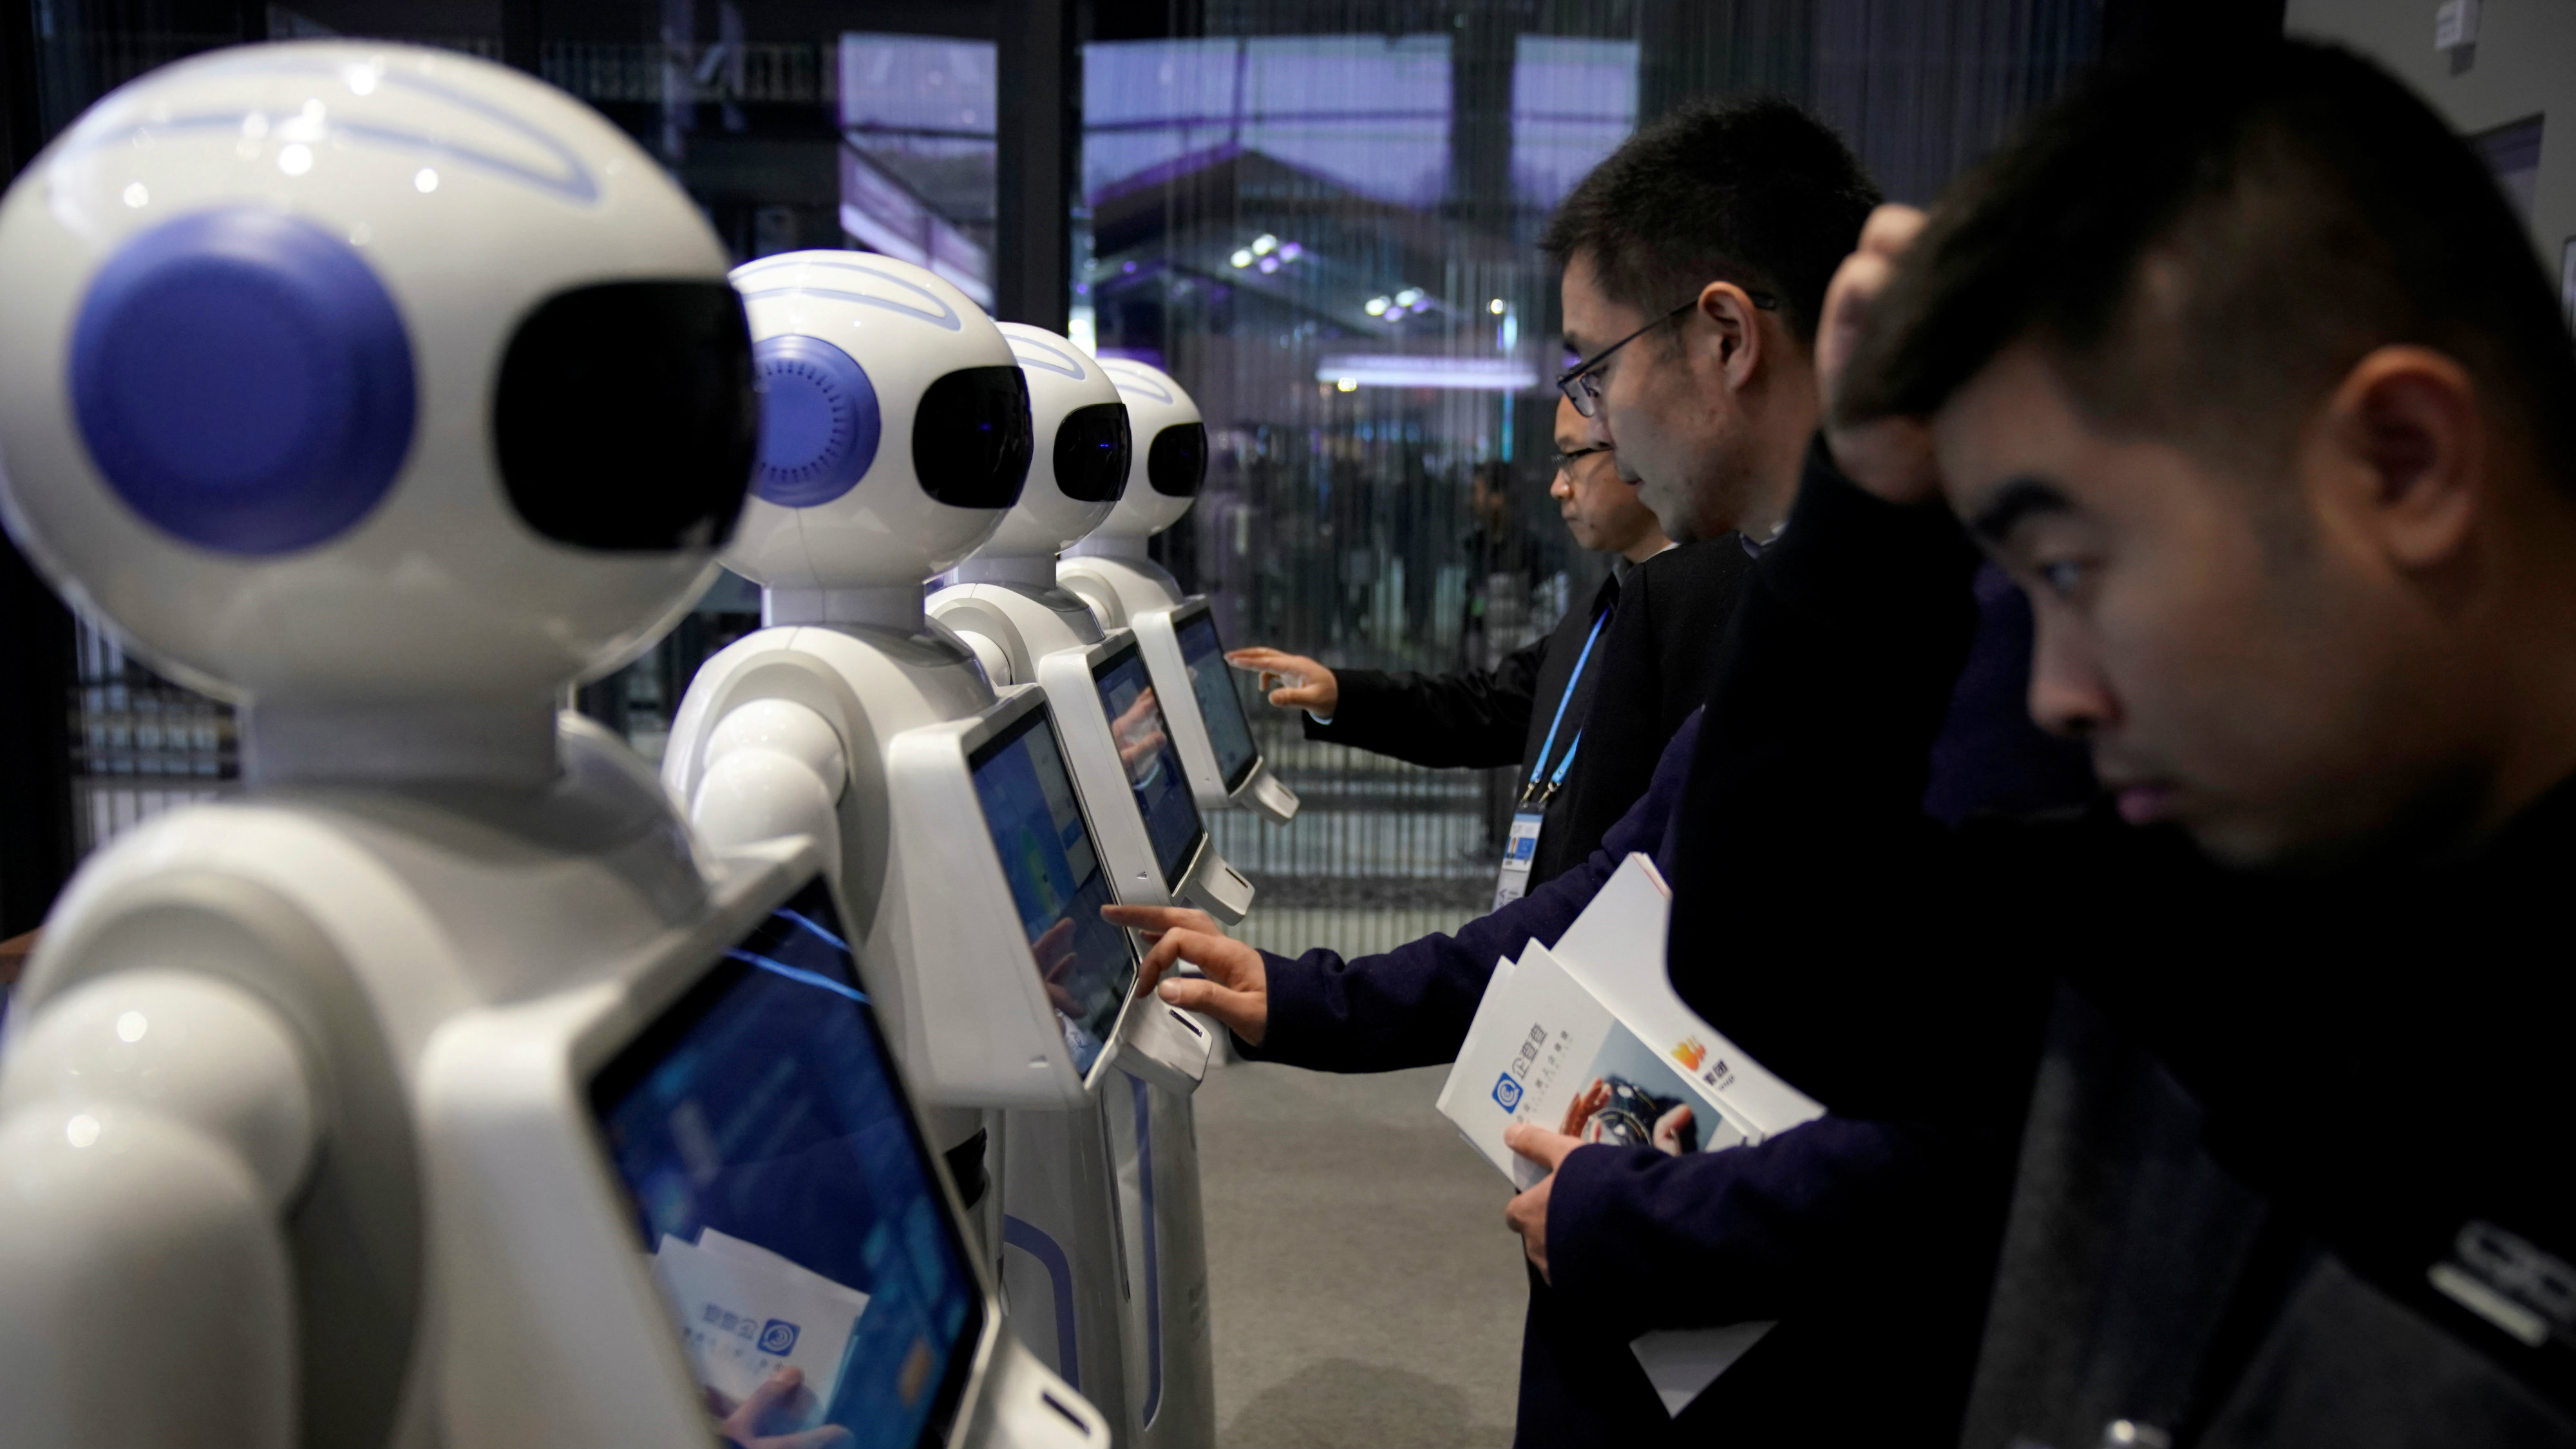 People look at Xiao Qiao robots during the fourth World Internet Conference in Wuzhen, Zhejiang province, China, December 3, 2017.